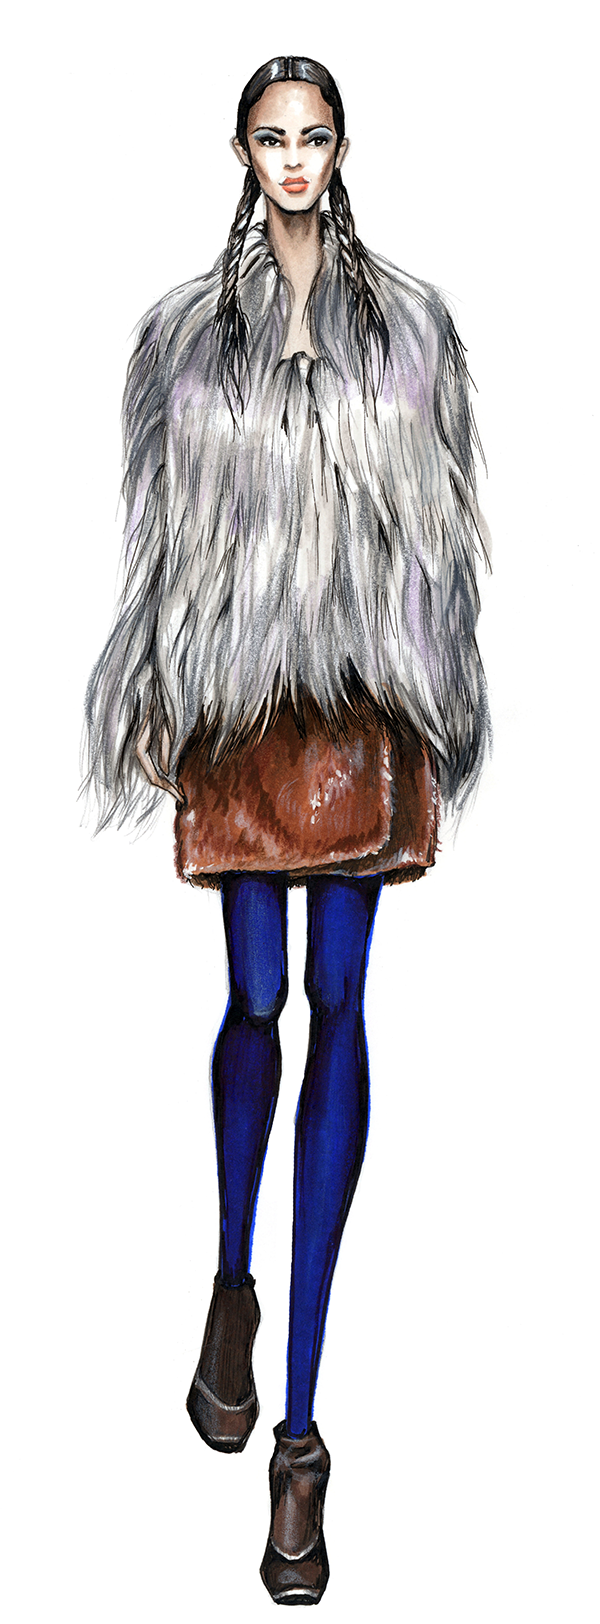 600x1624 Collection Of Fur Coat Technical Drawing High Quality, Free